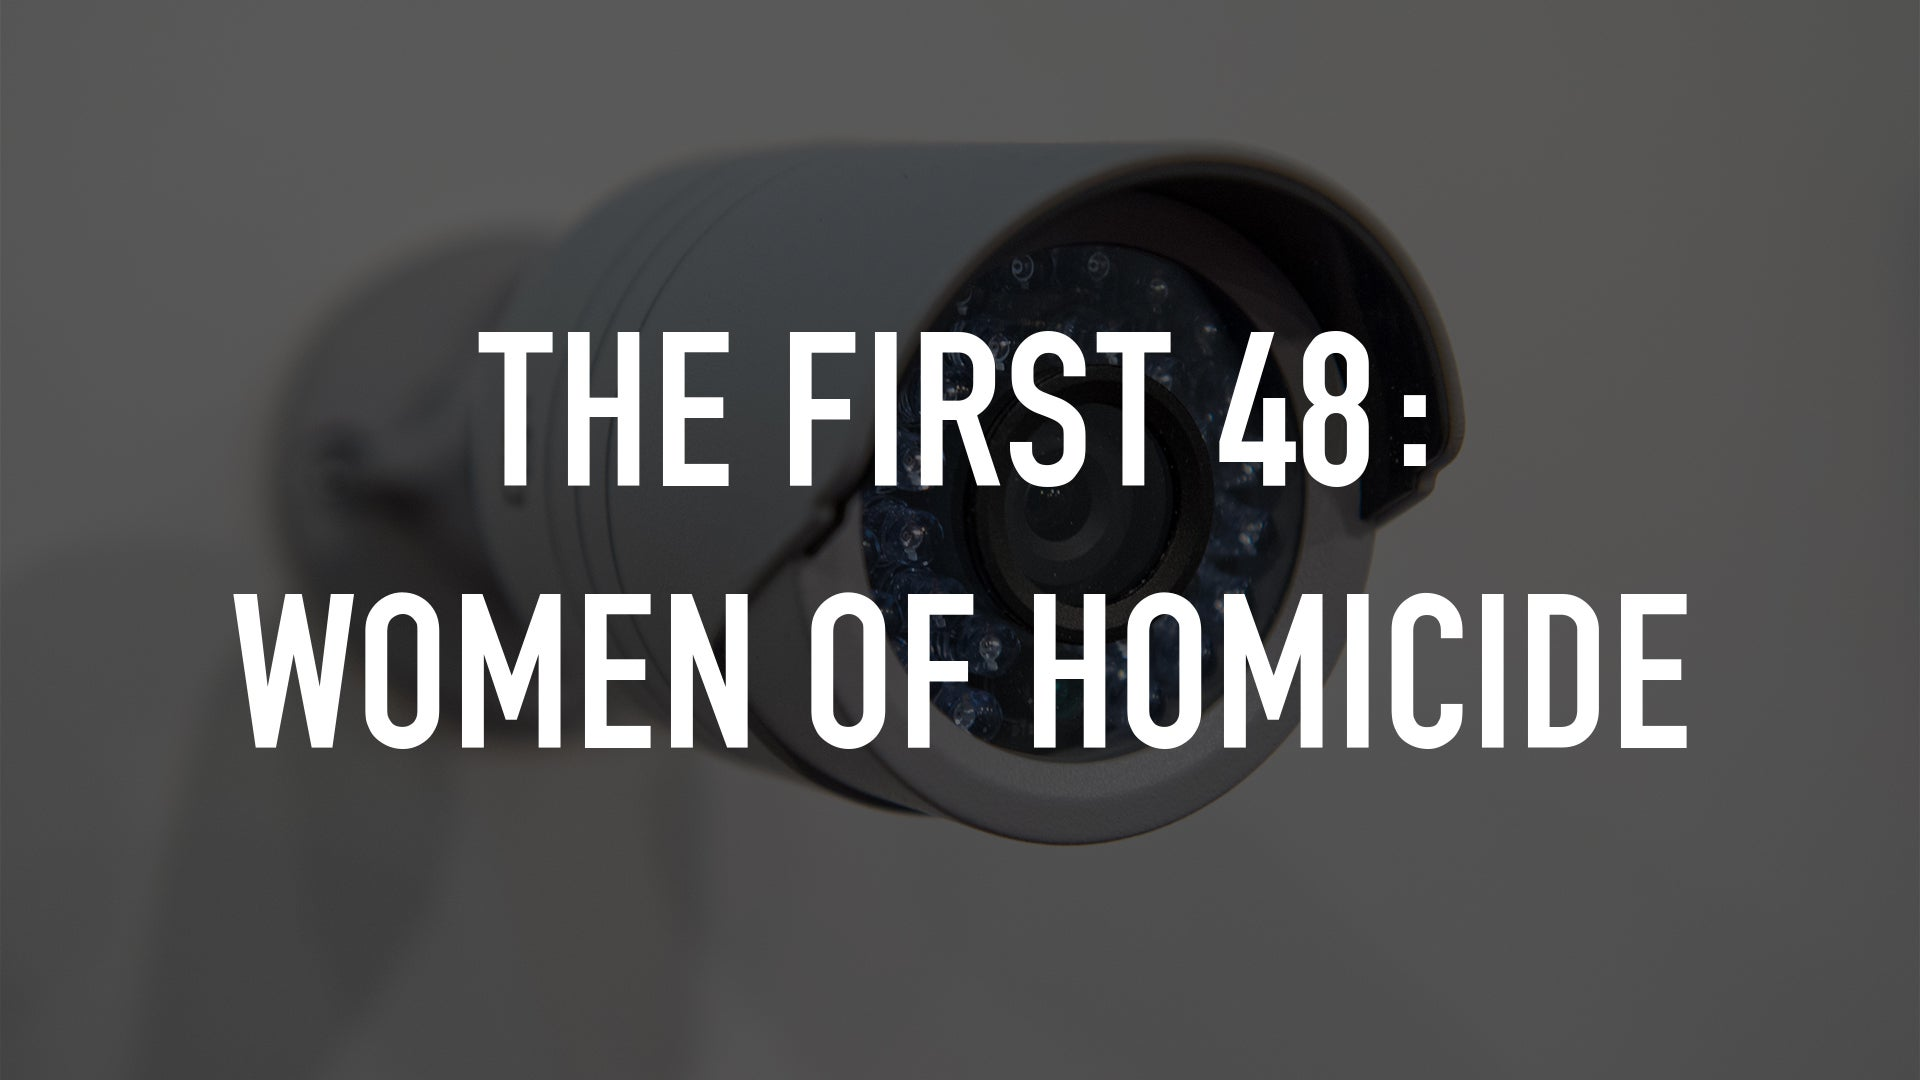 The First 48: Women of Homicide